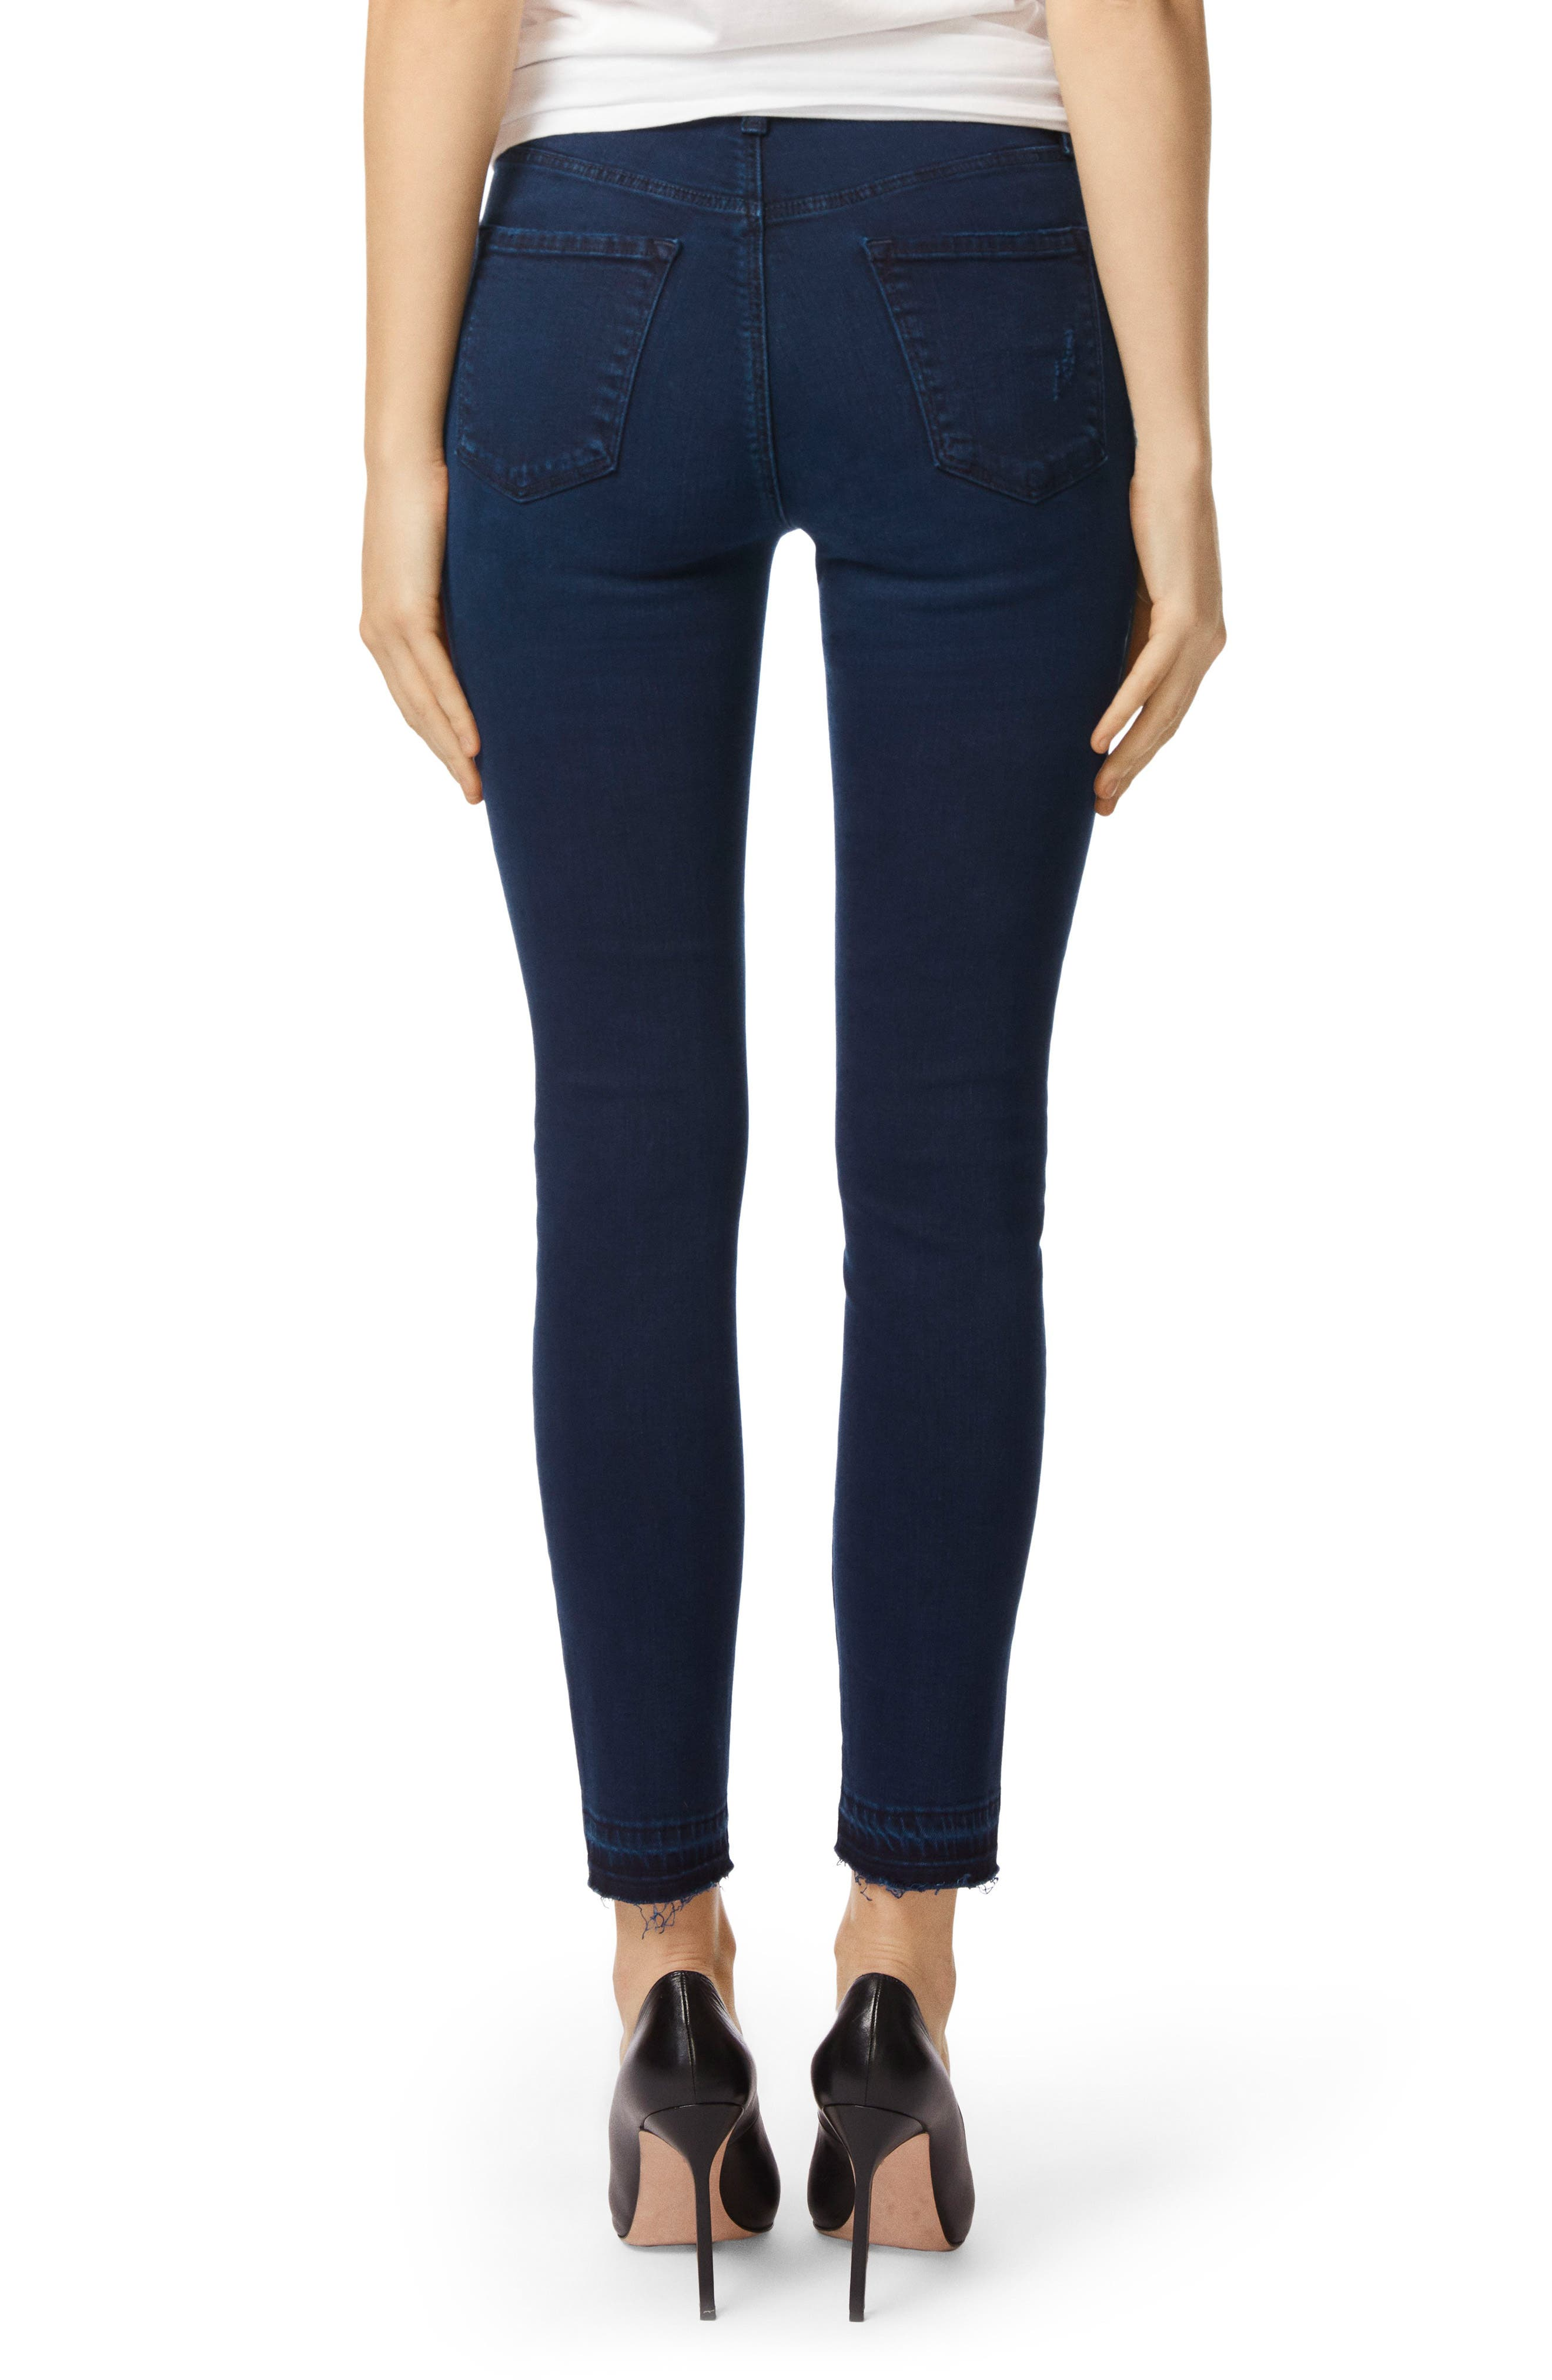 Alana Released Hem High Rise Crop Skinny Jeans,                             Alternate thumbnail 2, color,                             INVOKE DESTRUCT